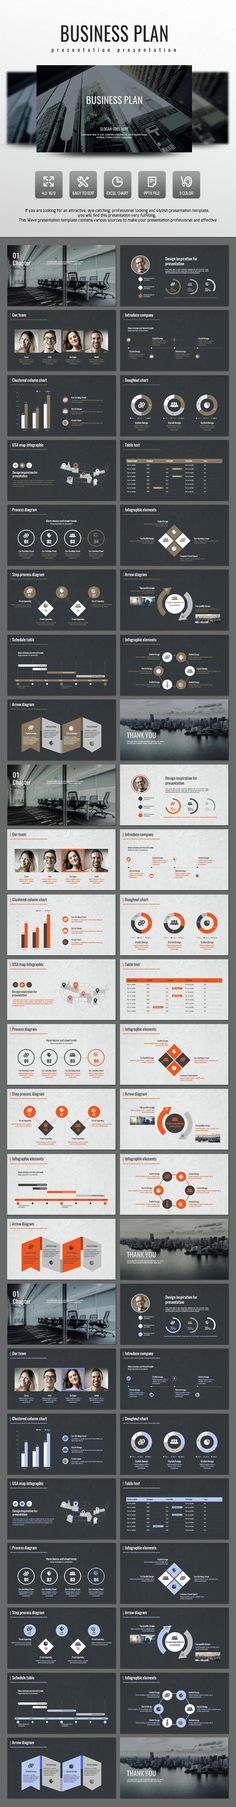 Buy Business Plan by on GraphicRiver. This 'Business Plan Presentation' template is designed with business plan design themes. Attractive colors and images. Graphisches Design, Slide Design, Plan Design, Layout Design, Business Plan Presentation, Presentation Layout, Presentation Templates, Business Ppt, Business Planning